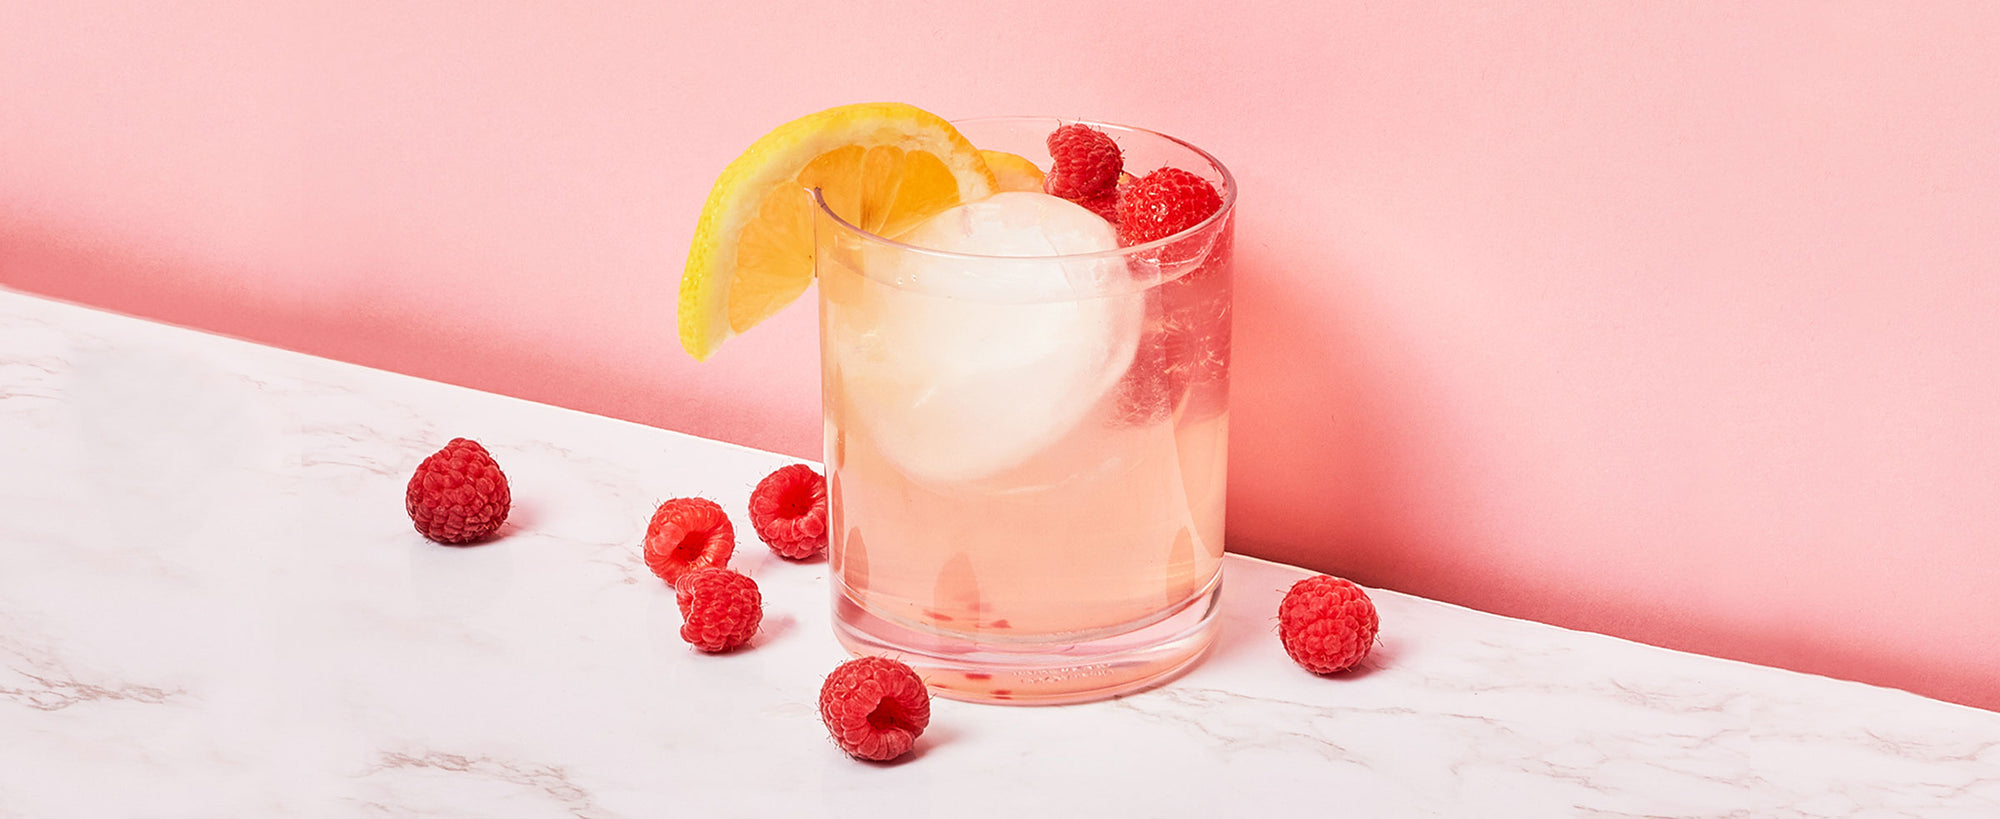 An image of ZOKU's Raspberry Lemonade Cocktail against a pink background.